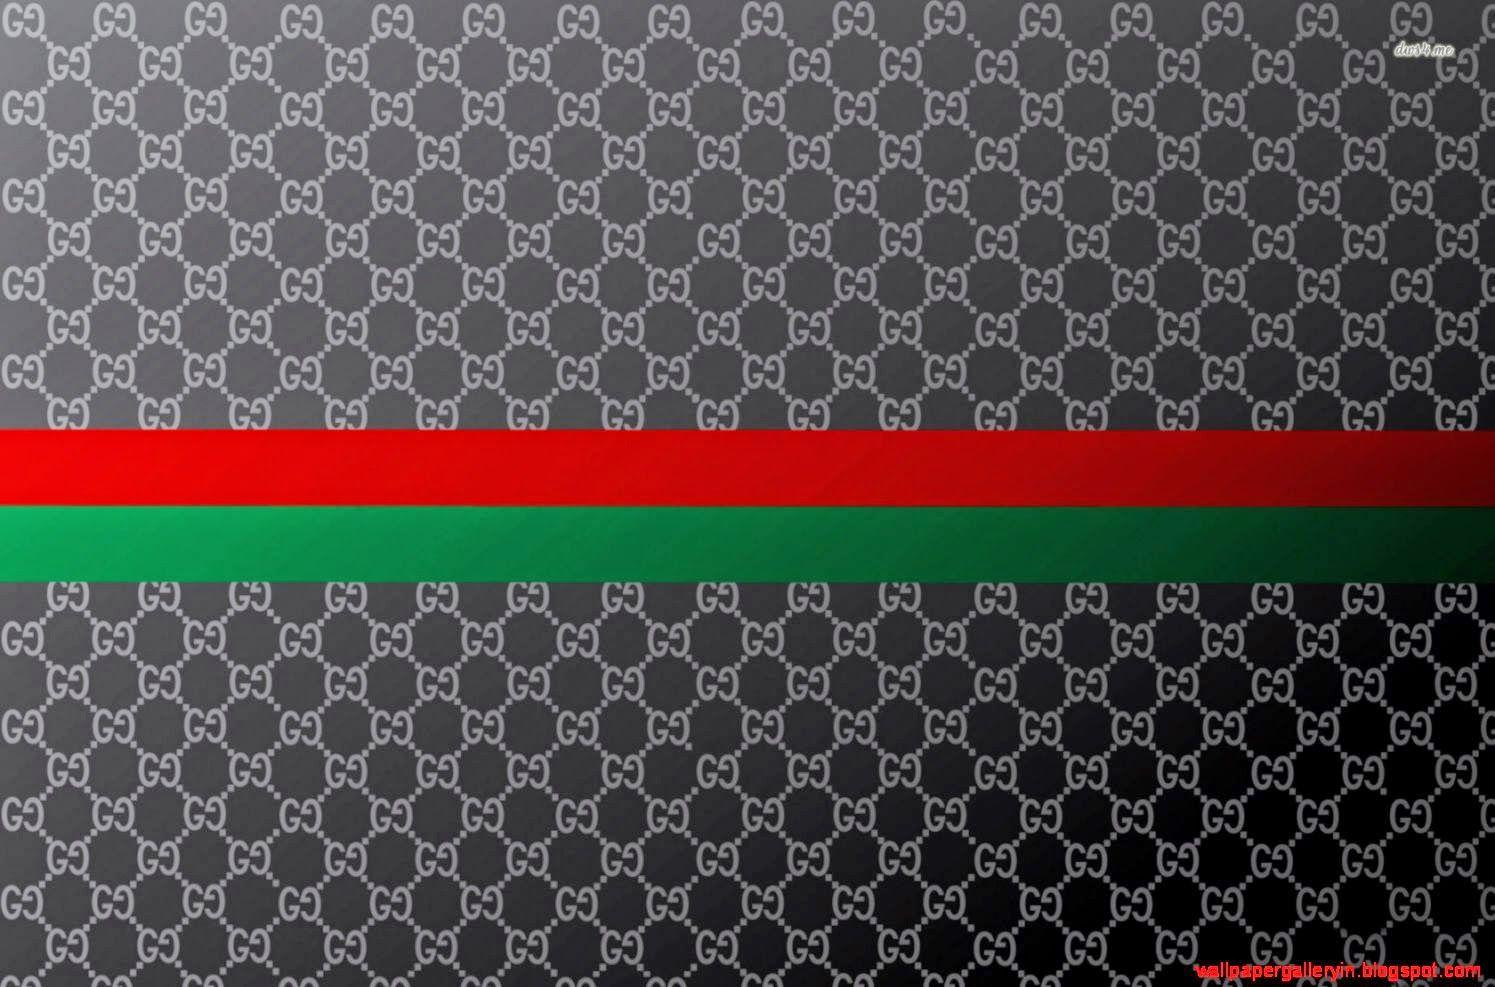 Logo Gucci Wallpapers | Wallpaper Gallery